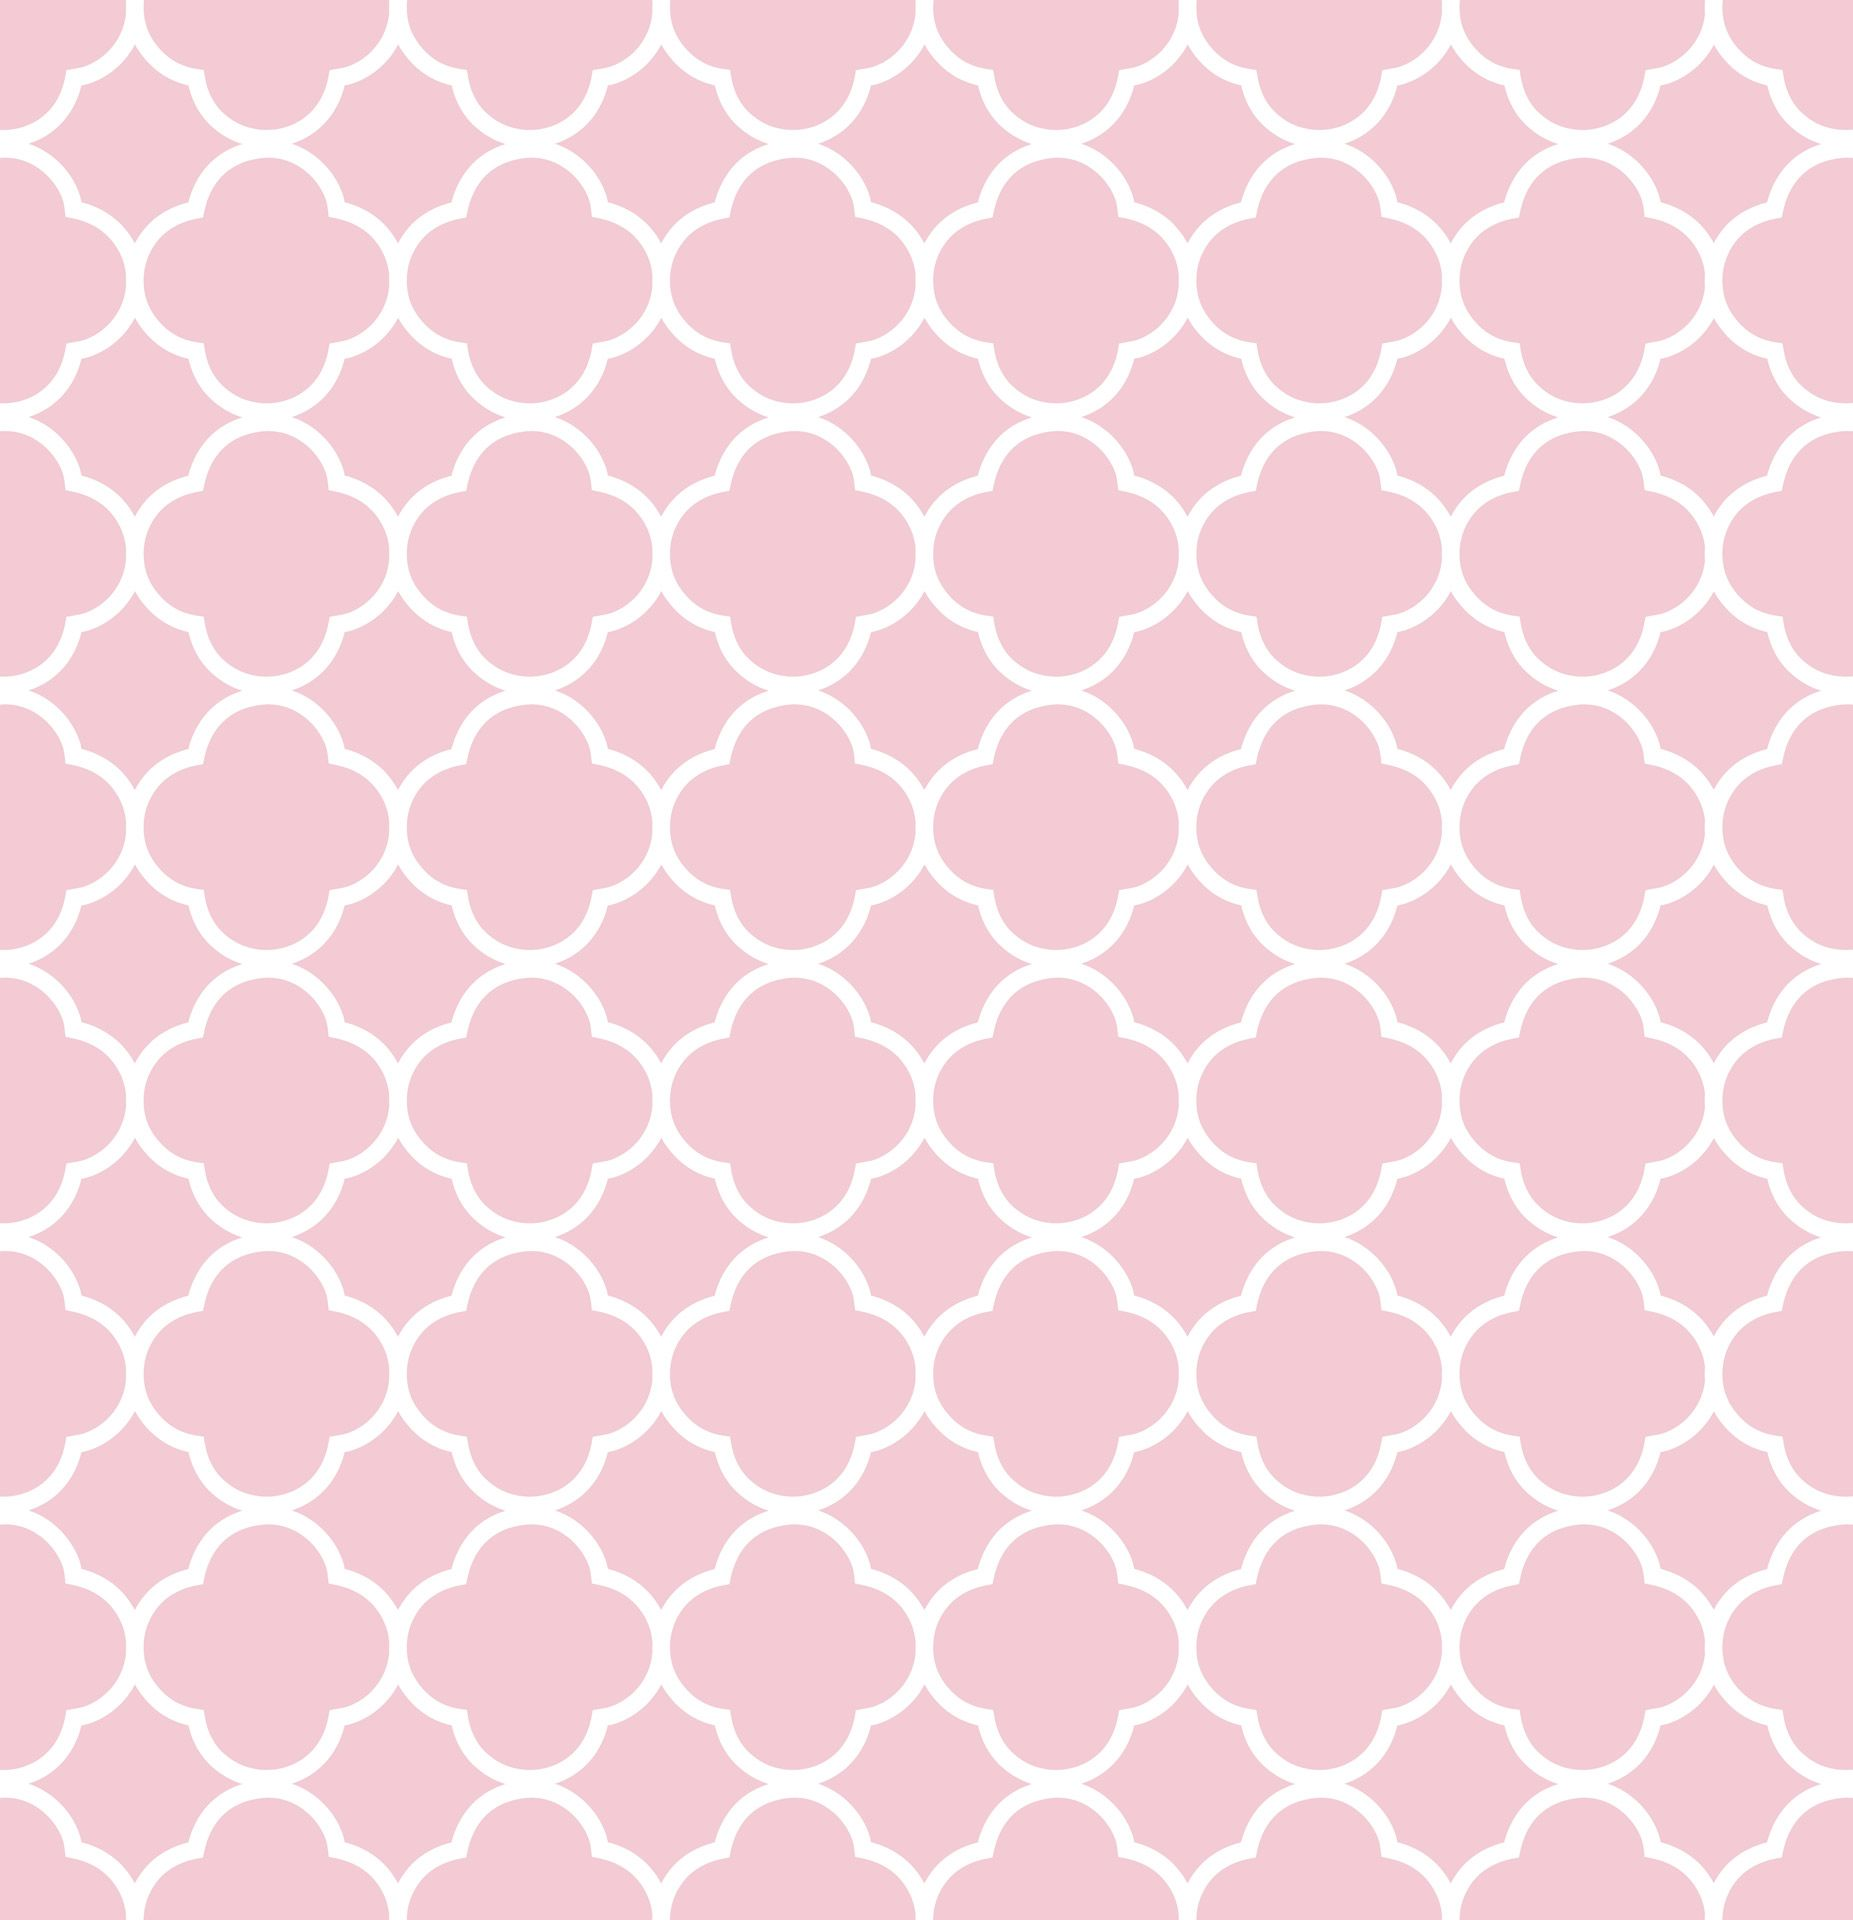 wallpaper pattern pink - photo #13